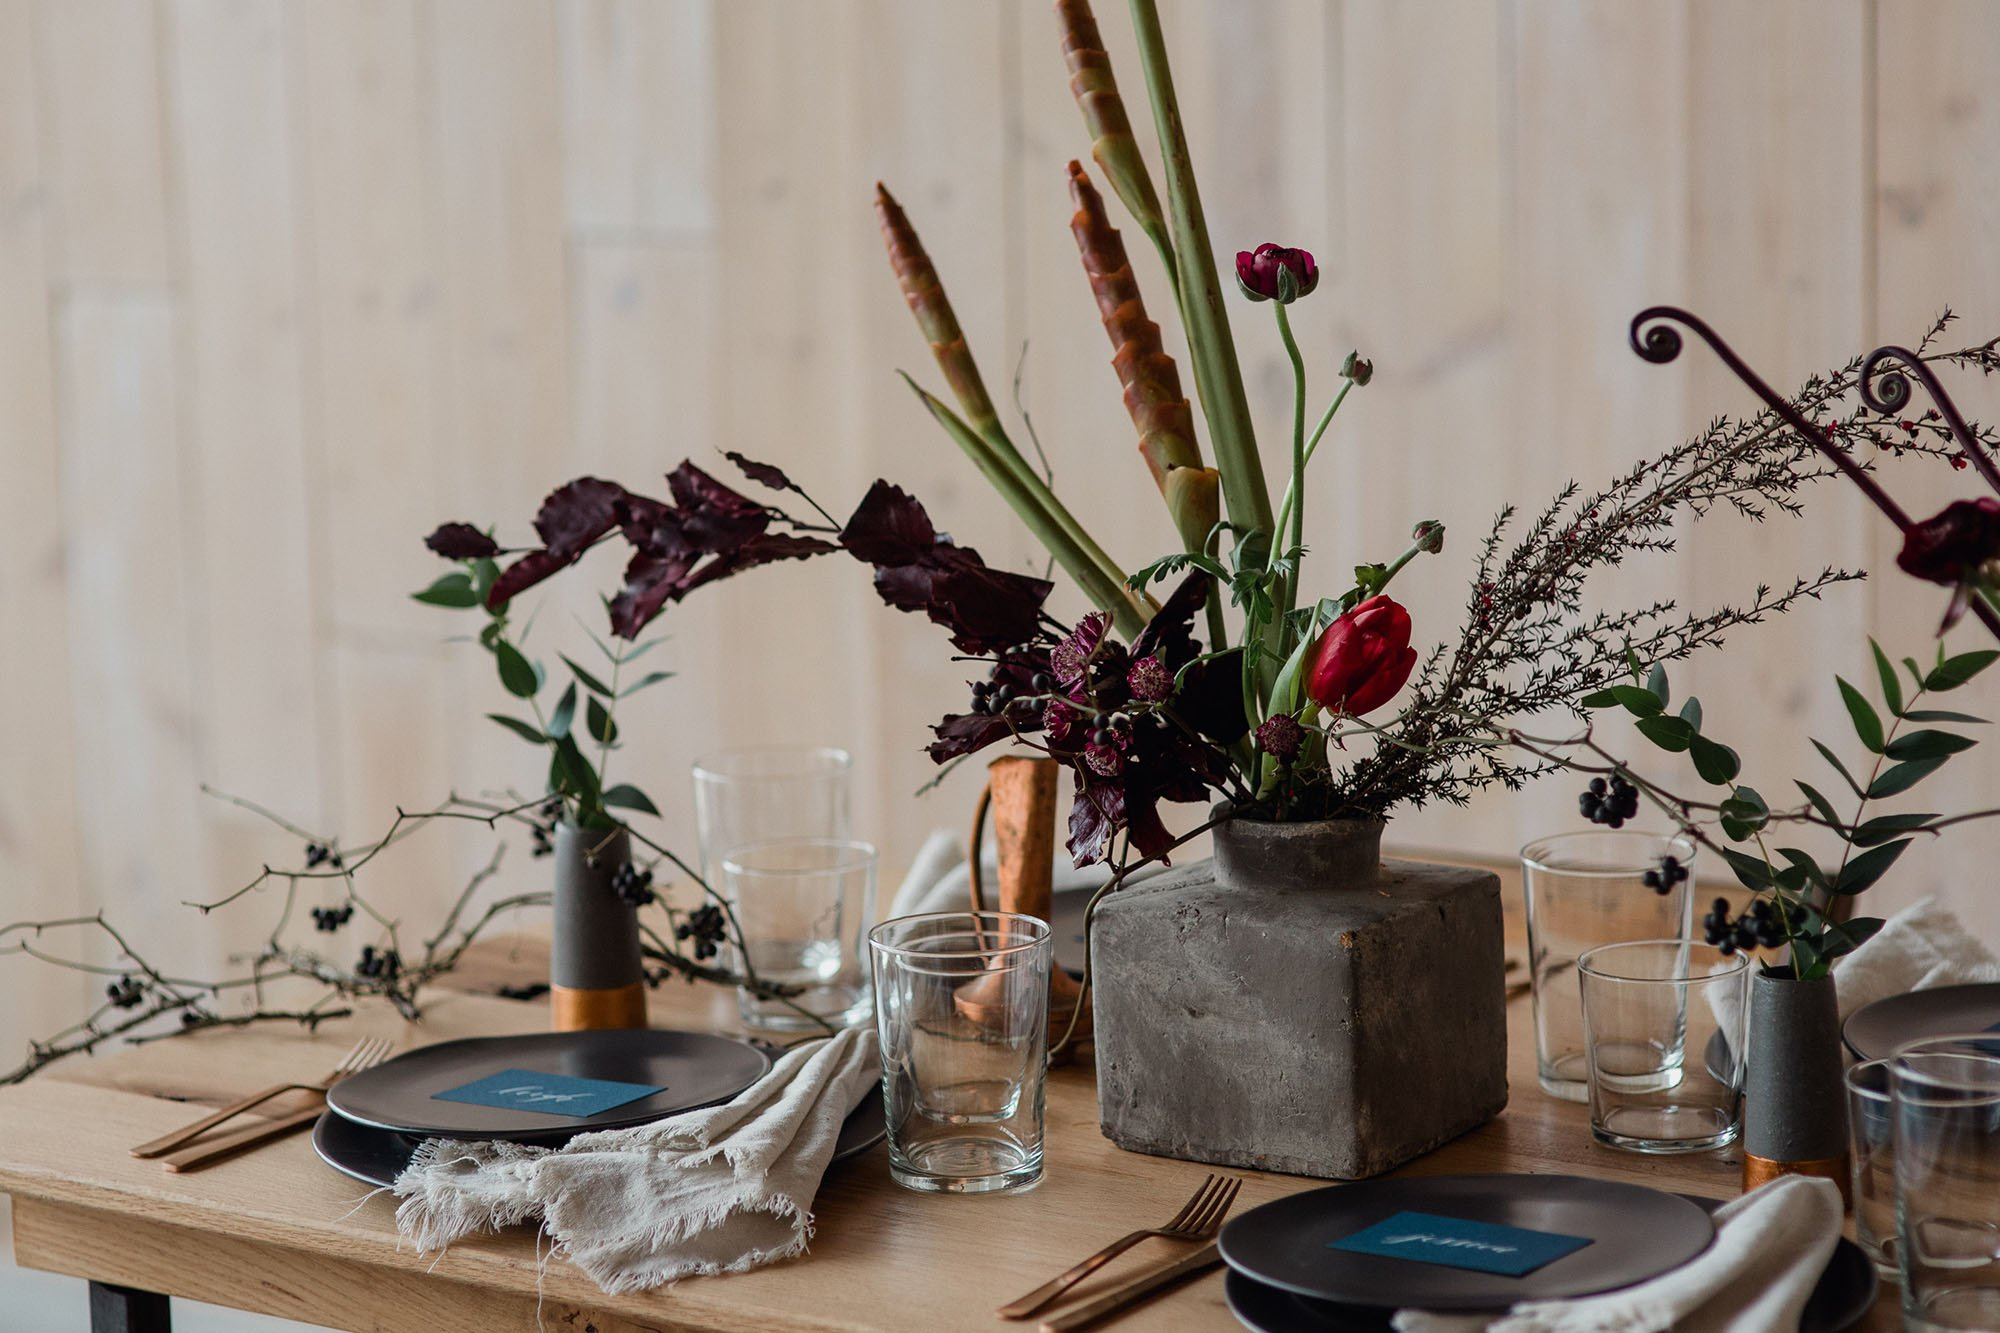 concrete wedding details for an austin urban wedding, peached social house wedding photographs